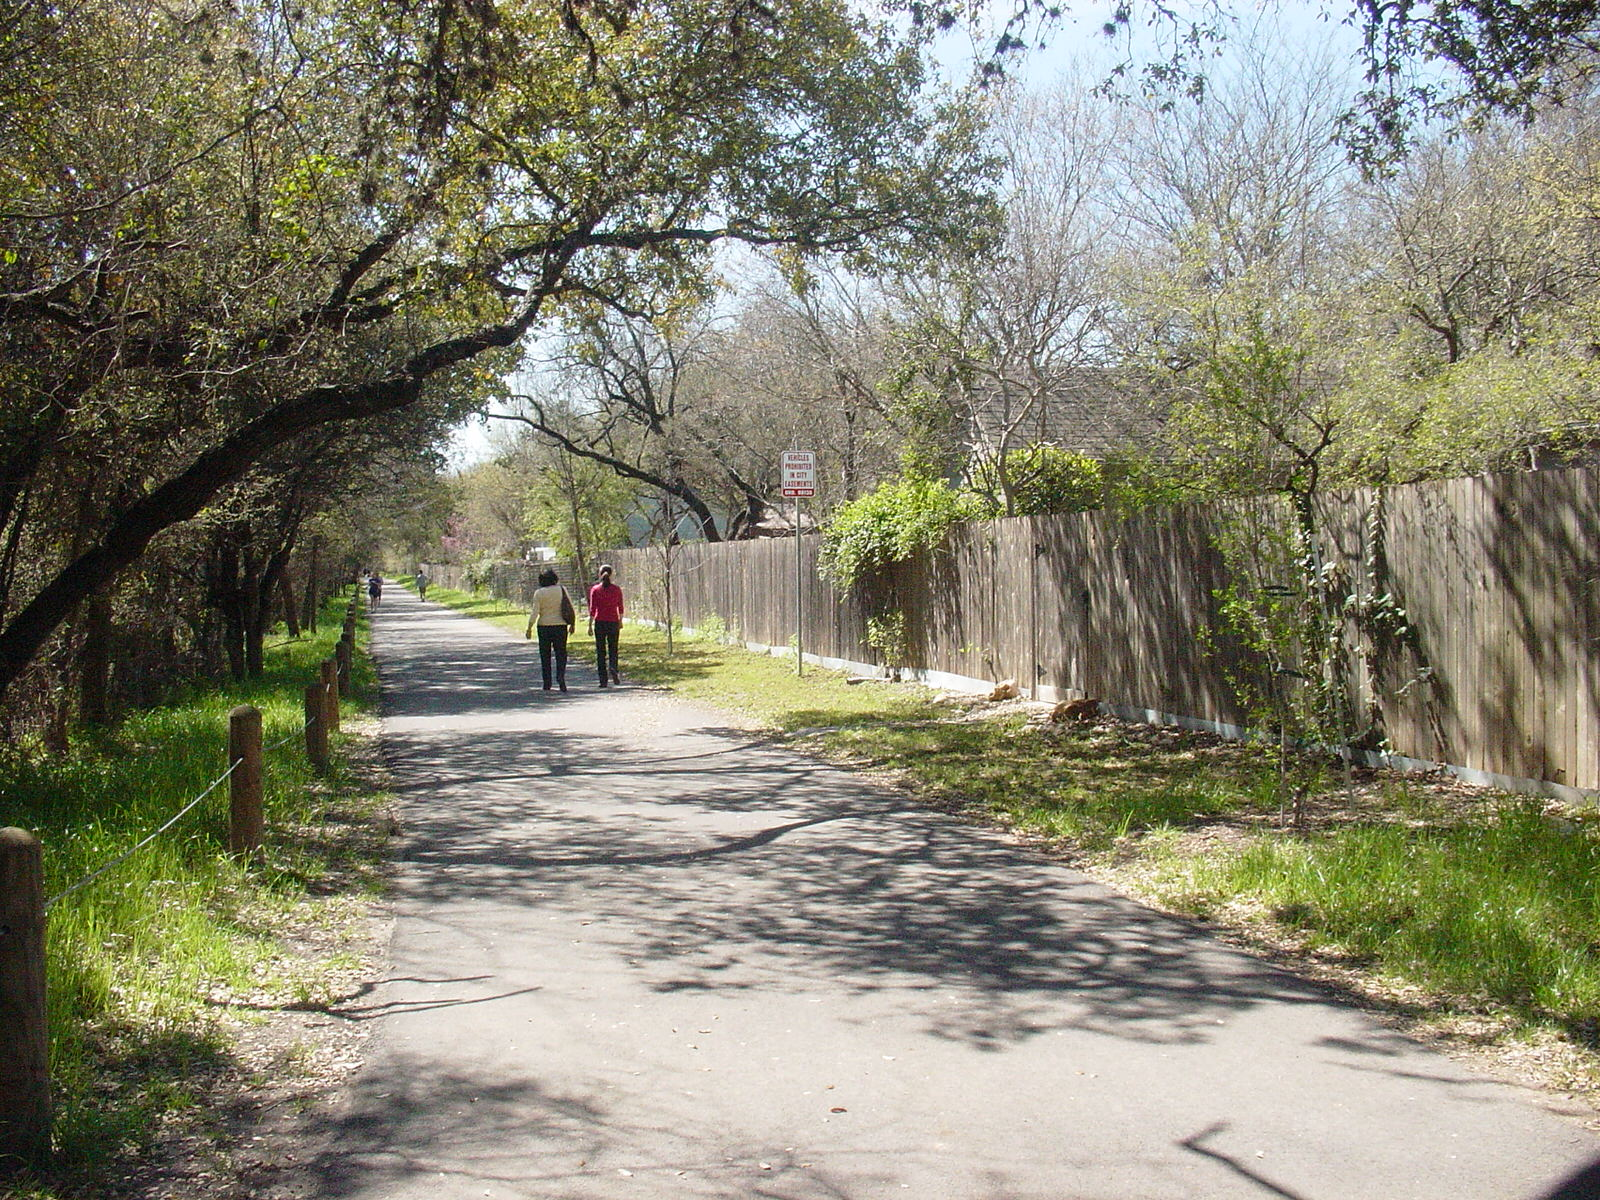 photo: People walking on the Salado Creek Greenway North near Voelcker Trailhead